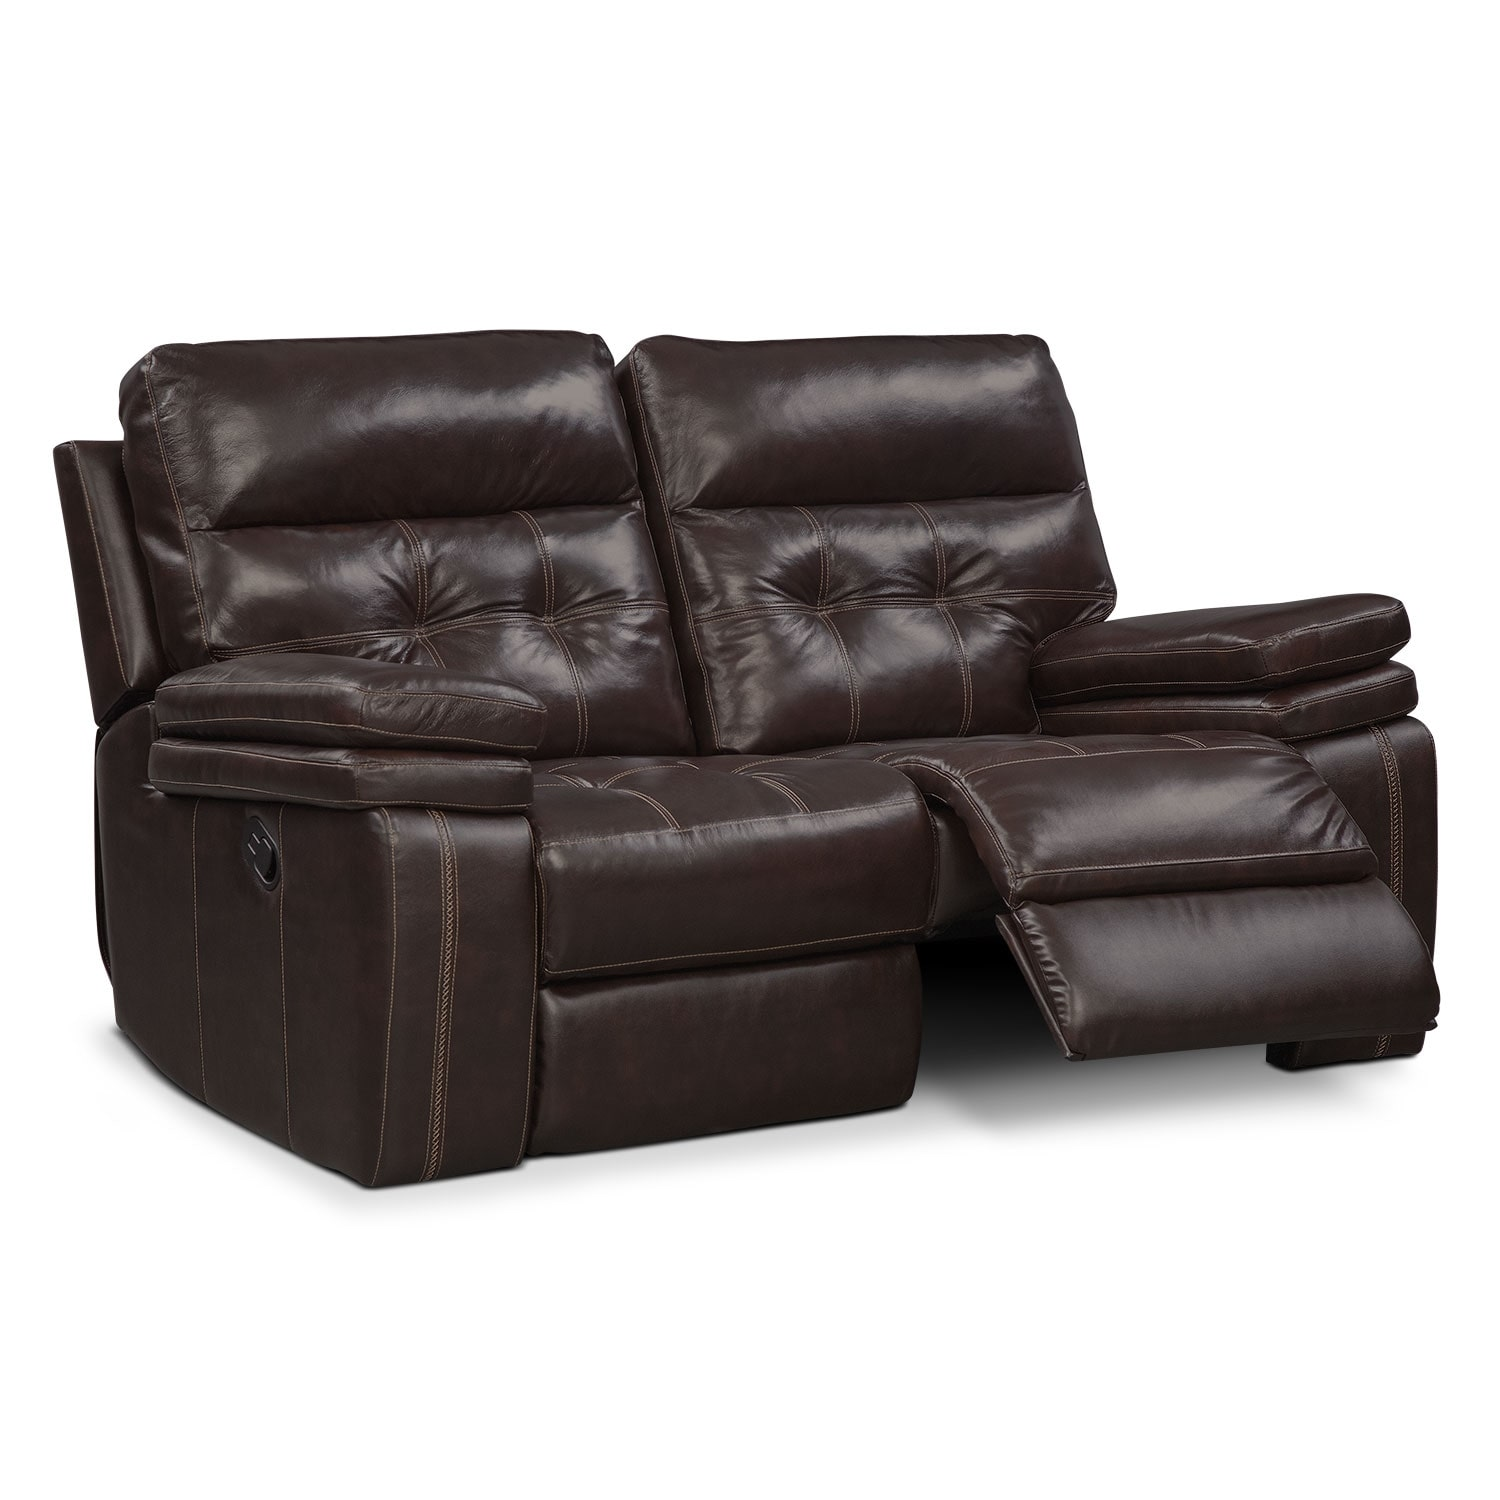 Brisco Manual Reclining Loveseat Brown Value City Furniture